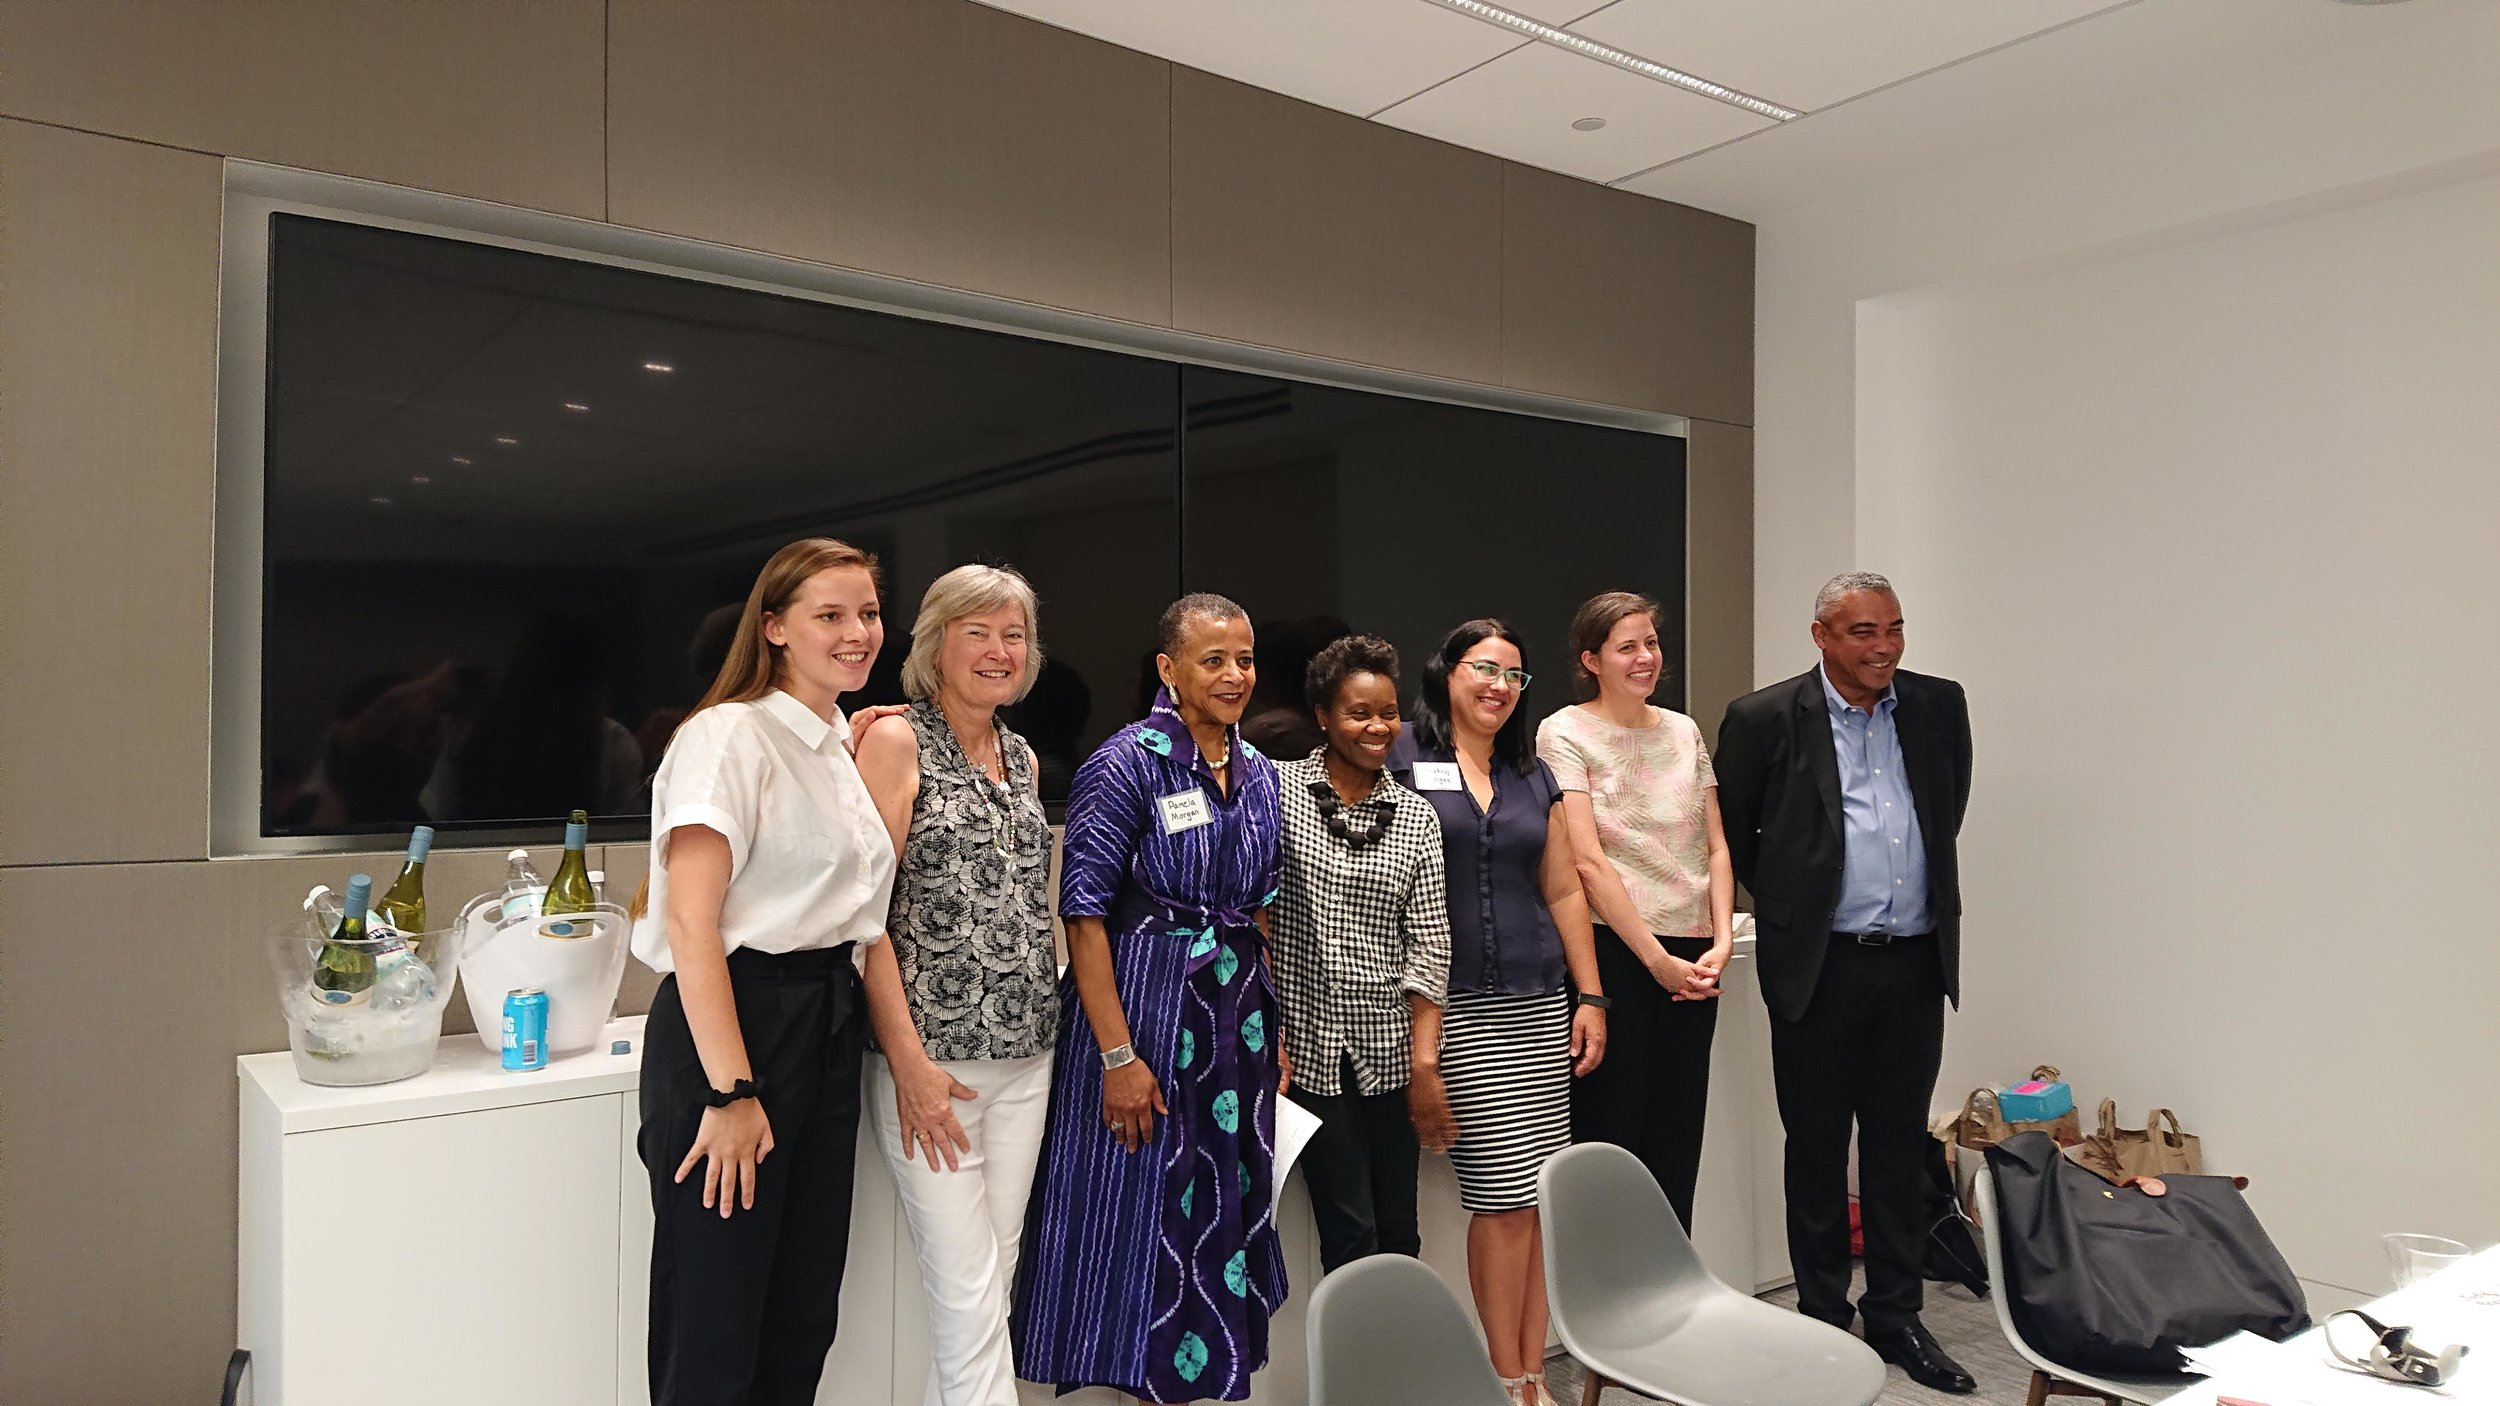 UN HLPF Side Event Migrant Women & SDGs - July 11, 2019